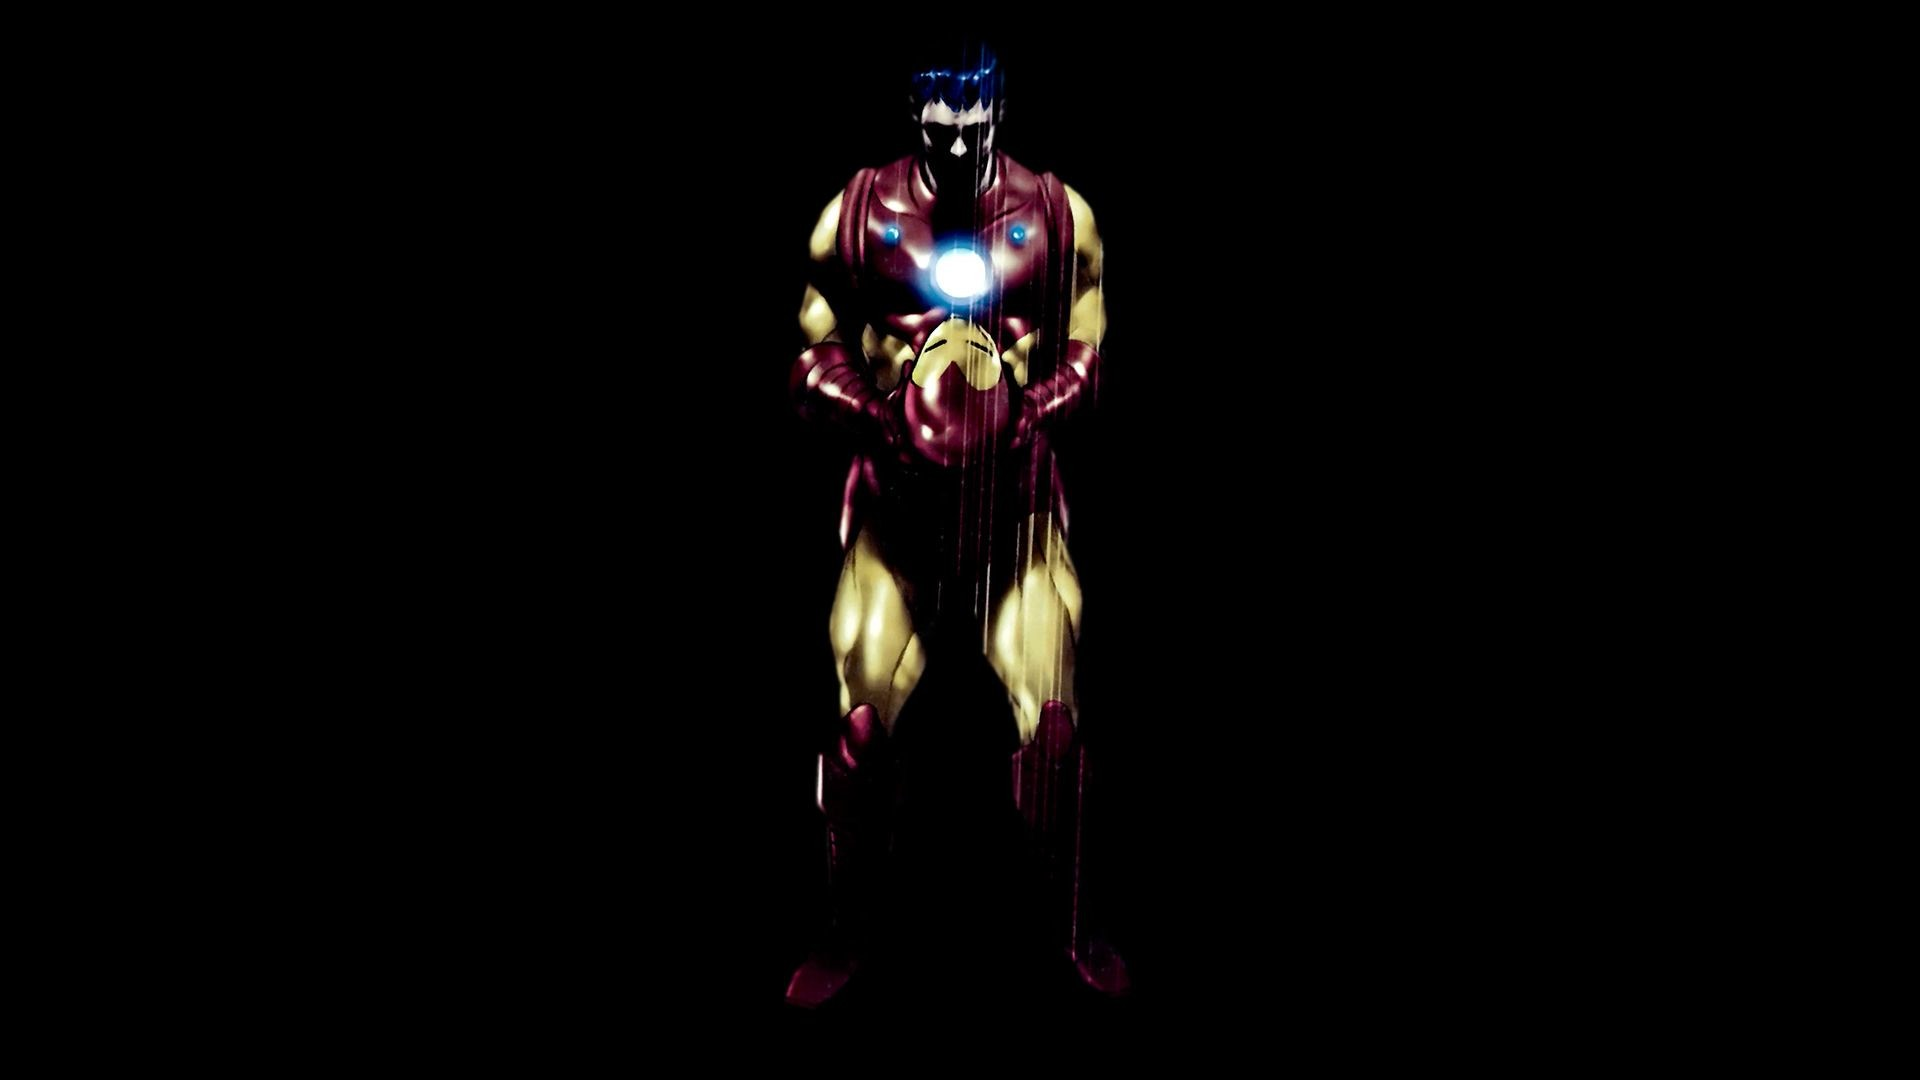 Iron Man Jarvis Wallpaper HD 72 images 1920x1080